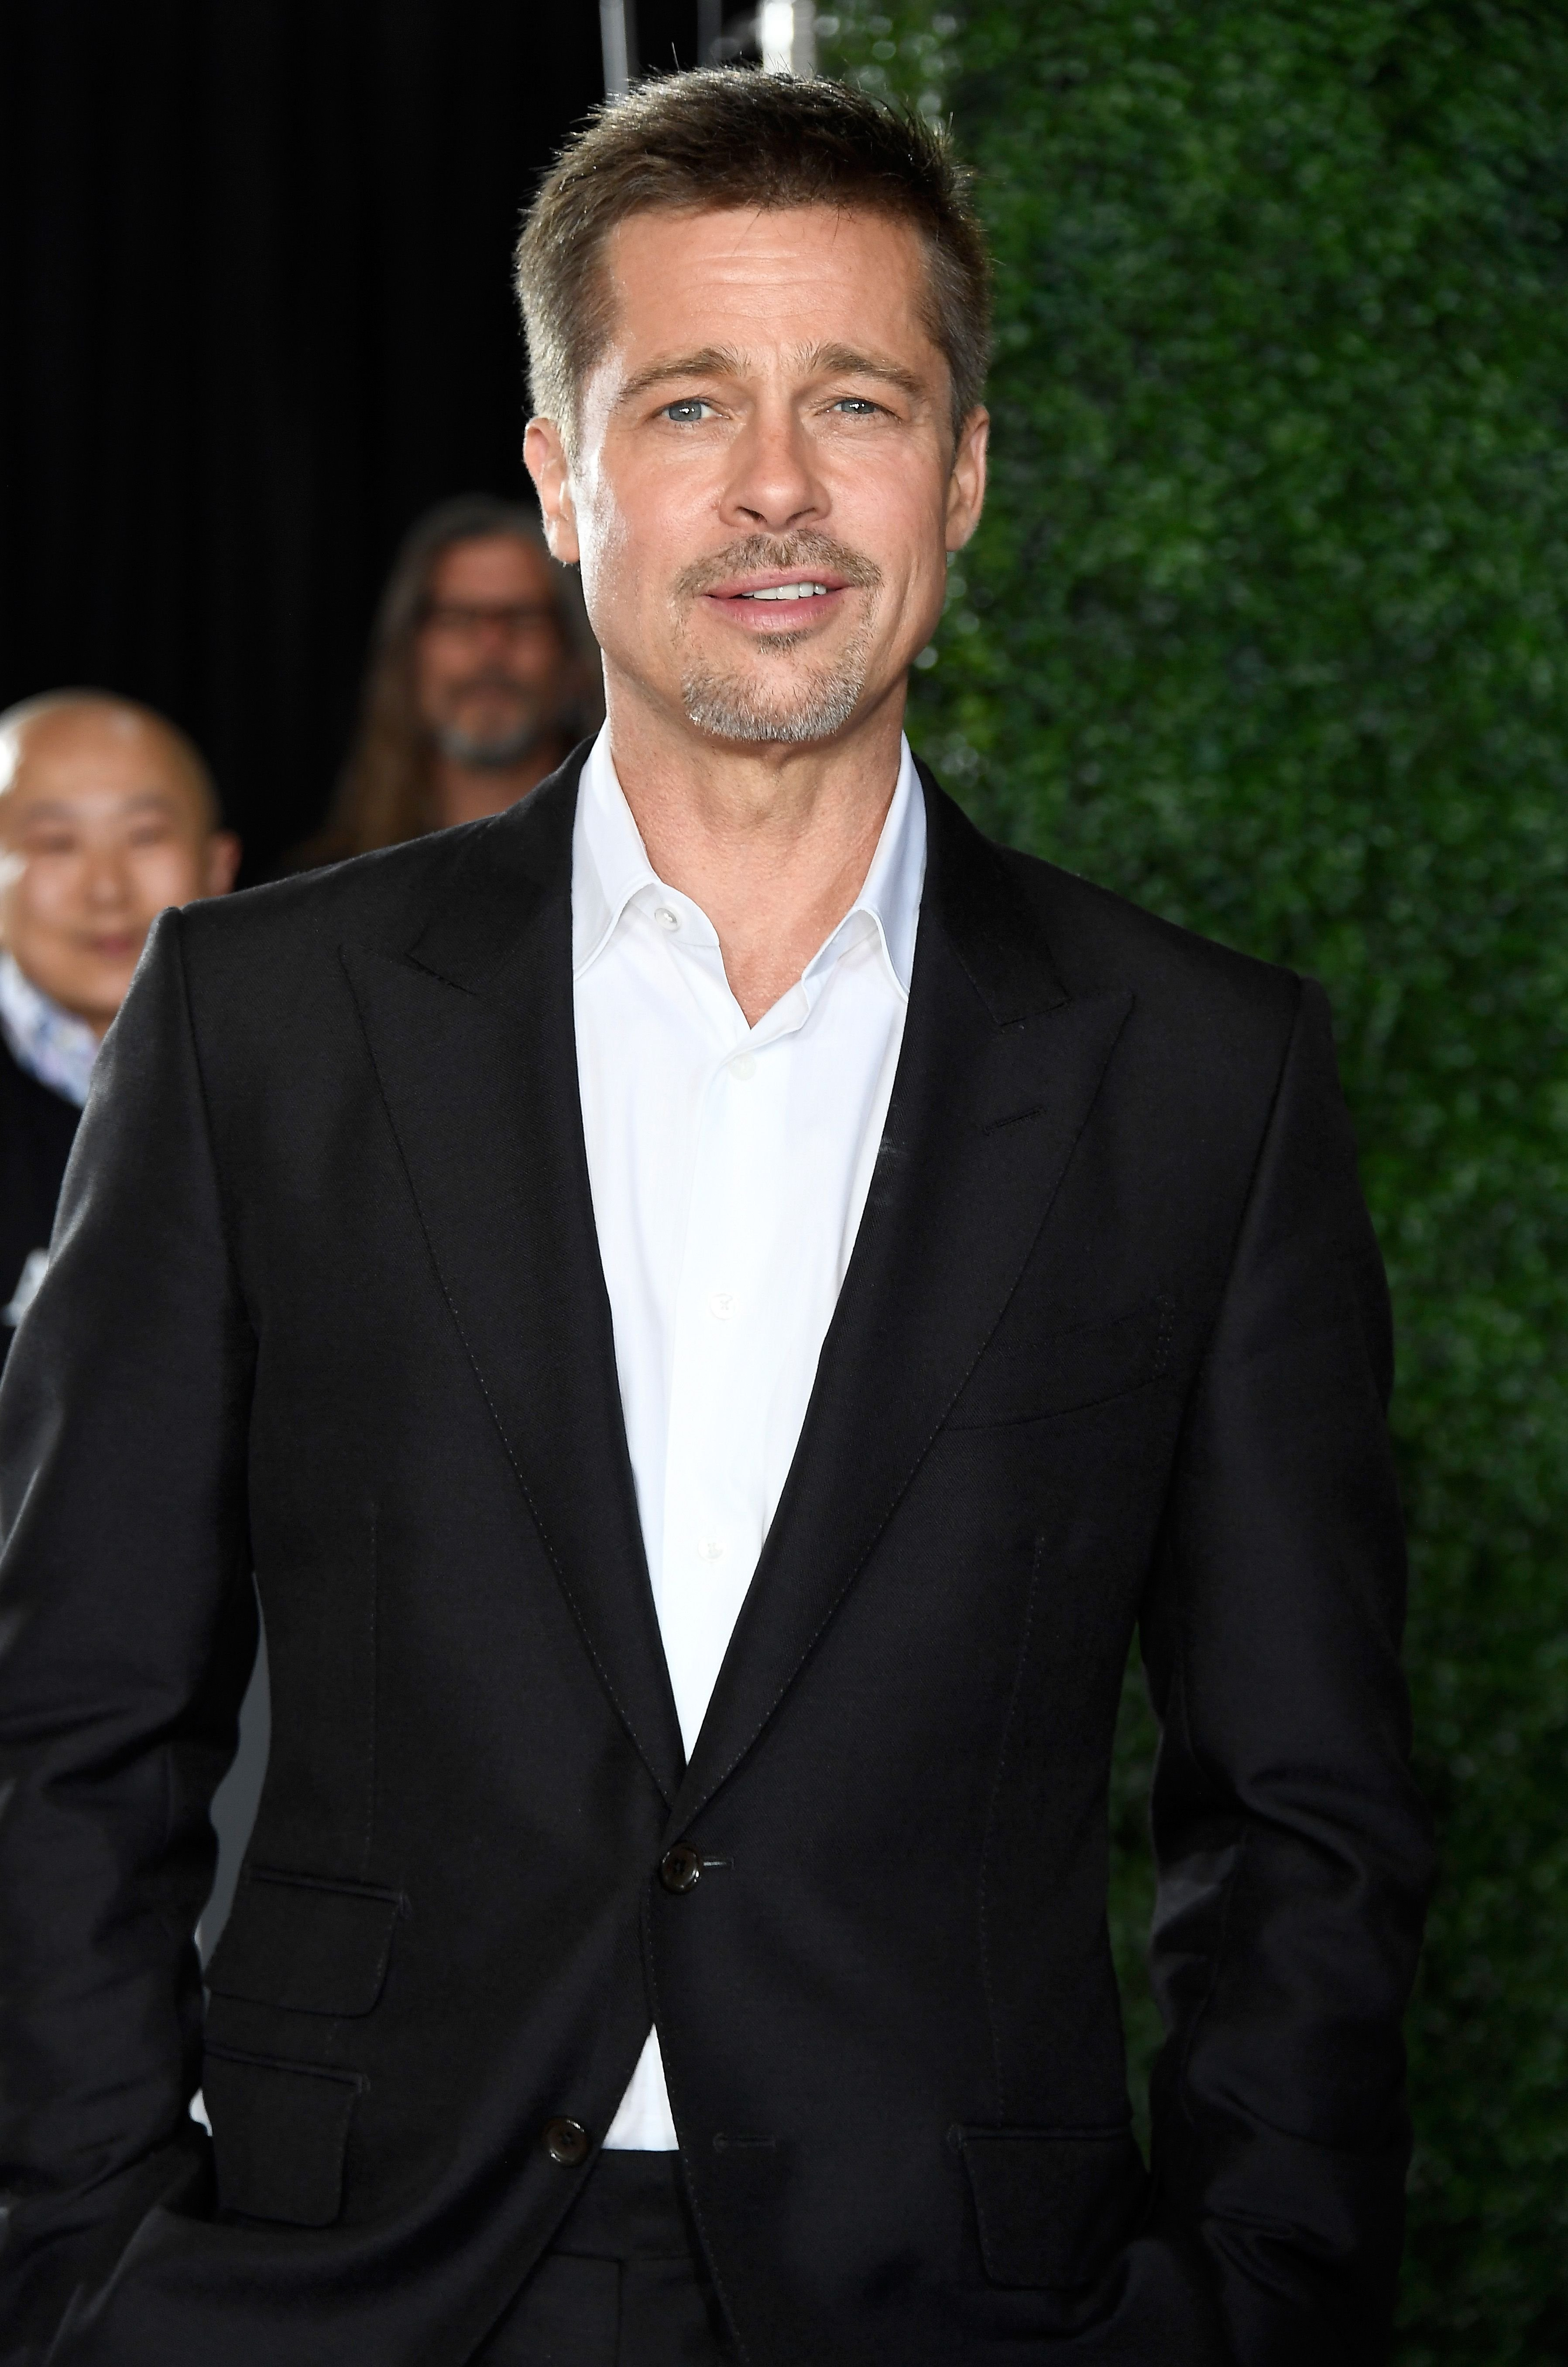 Brad Pitt's journey to stardom wasn't an easy one / Getty Images